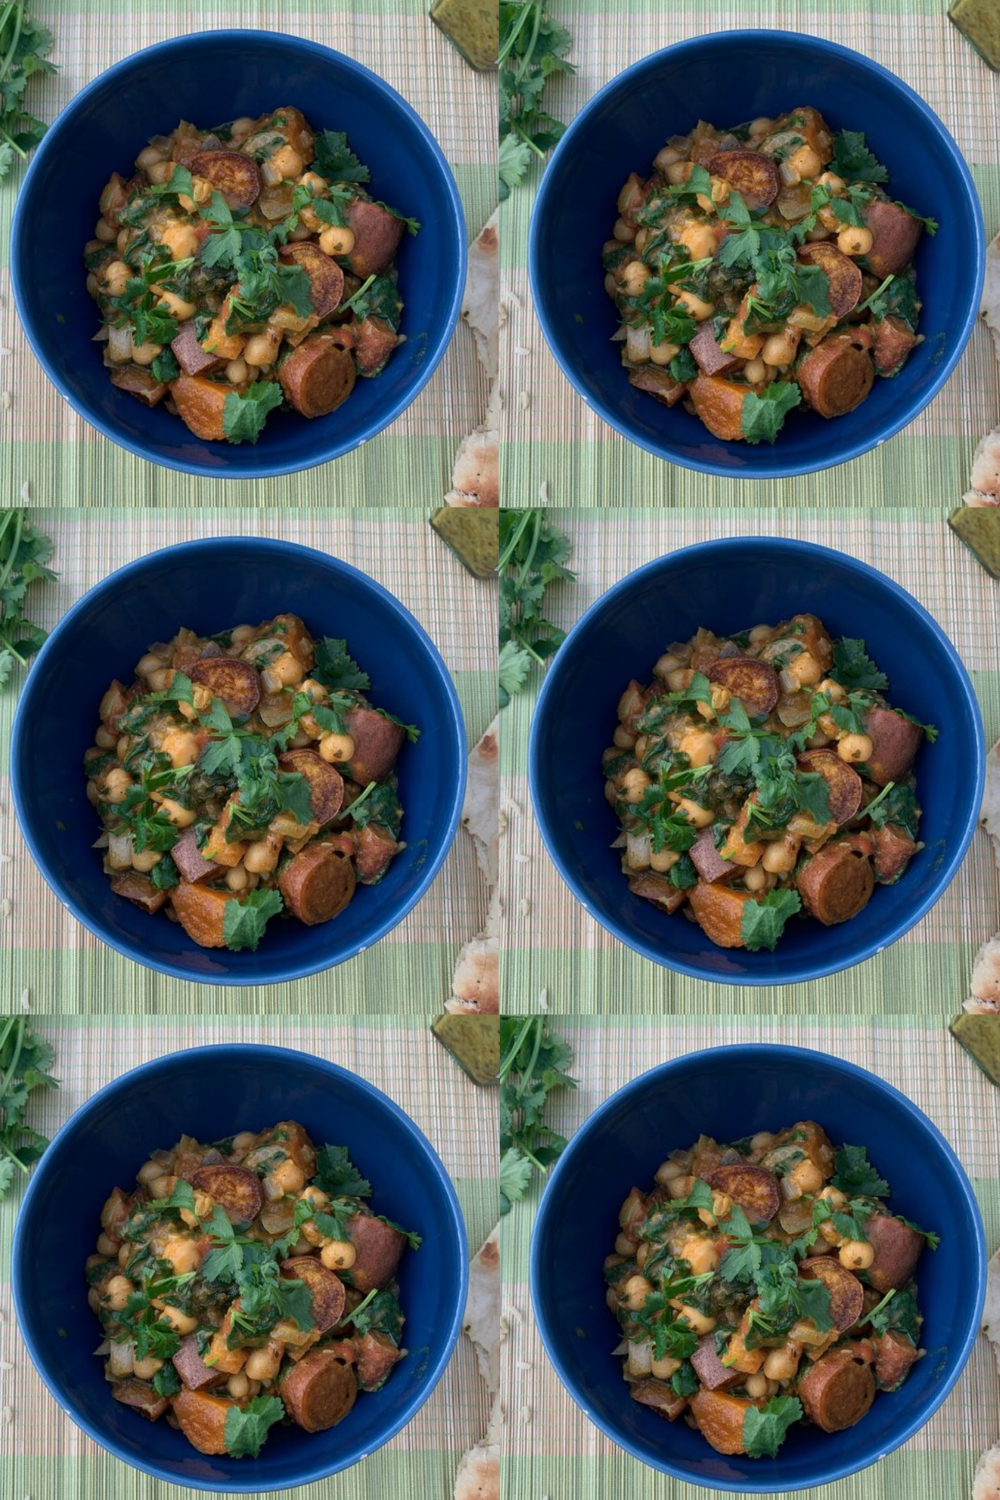 Healthy, lockdown-friendly recipe: Sweet potato, chickpea & spinach curry bowl